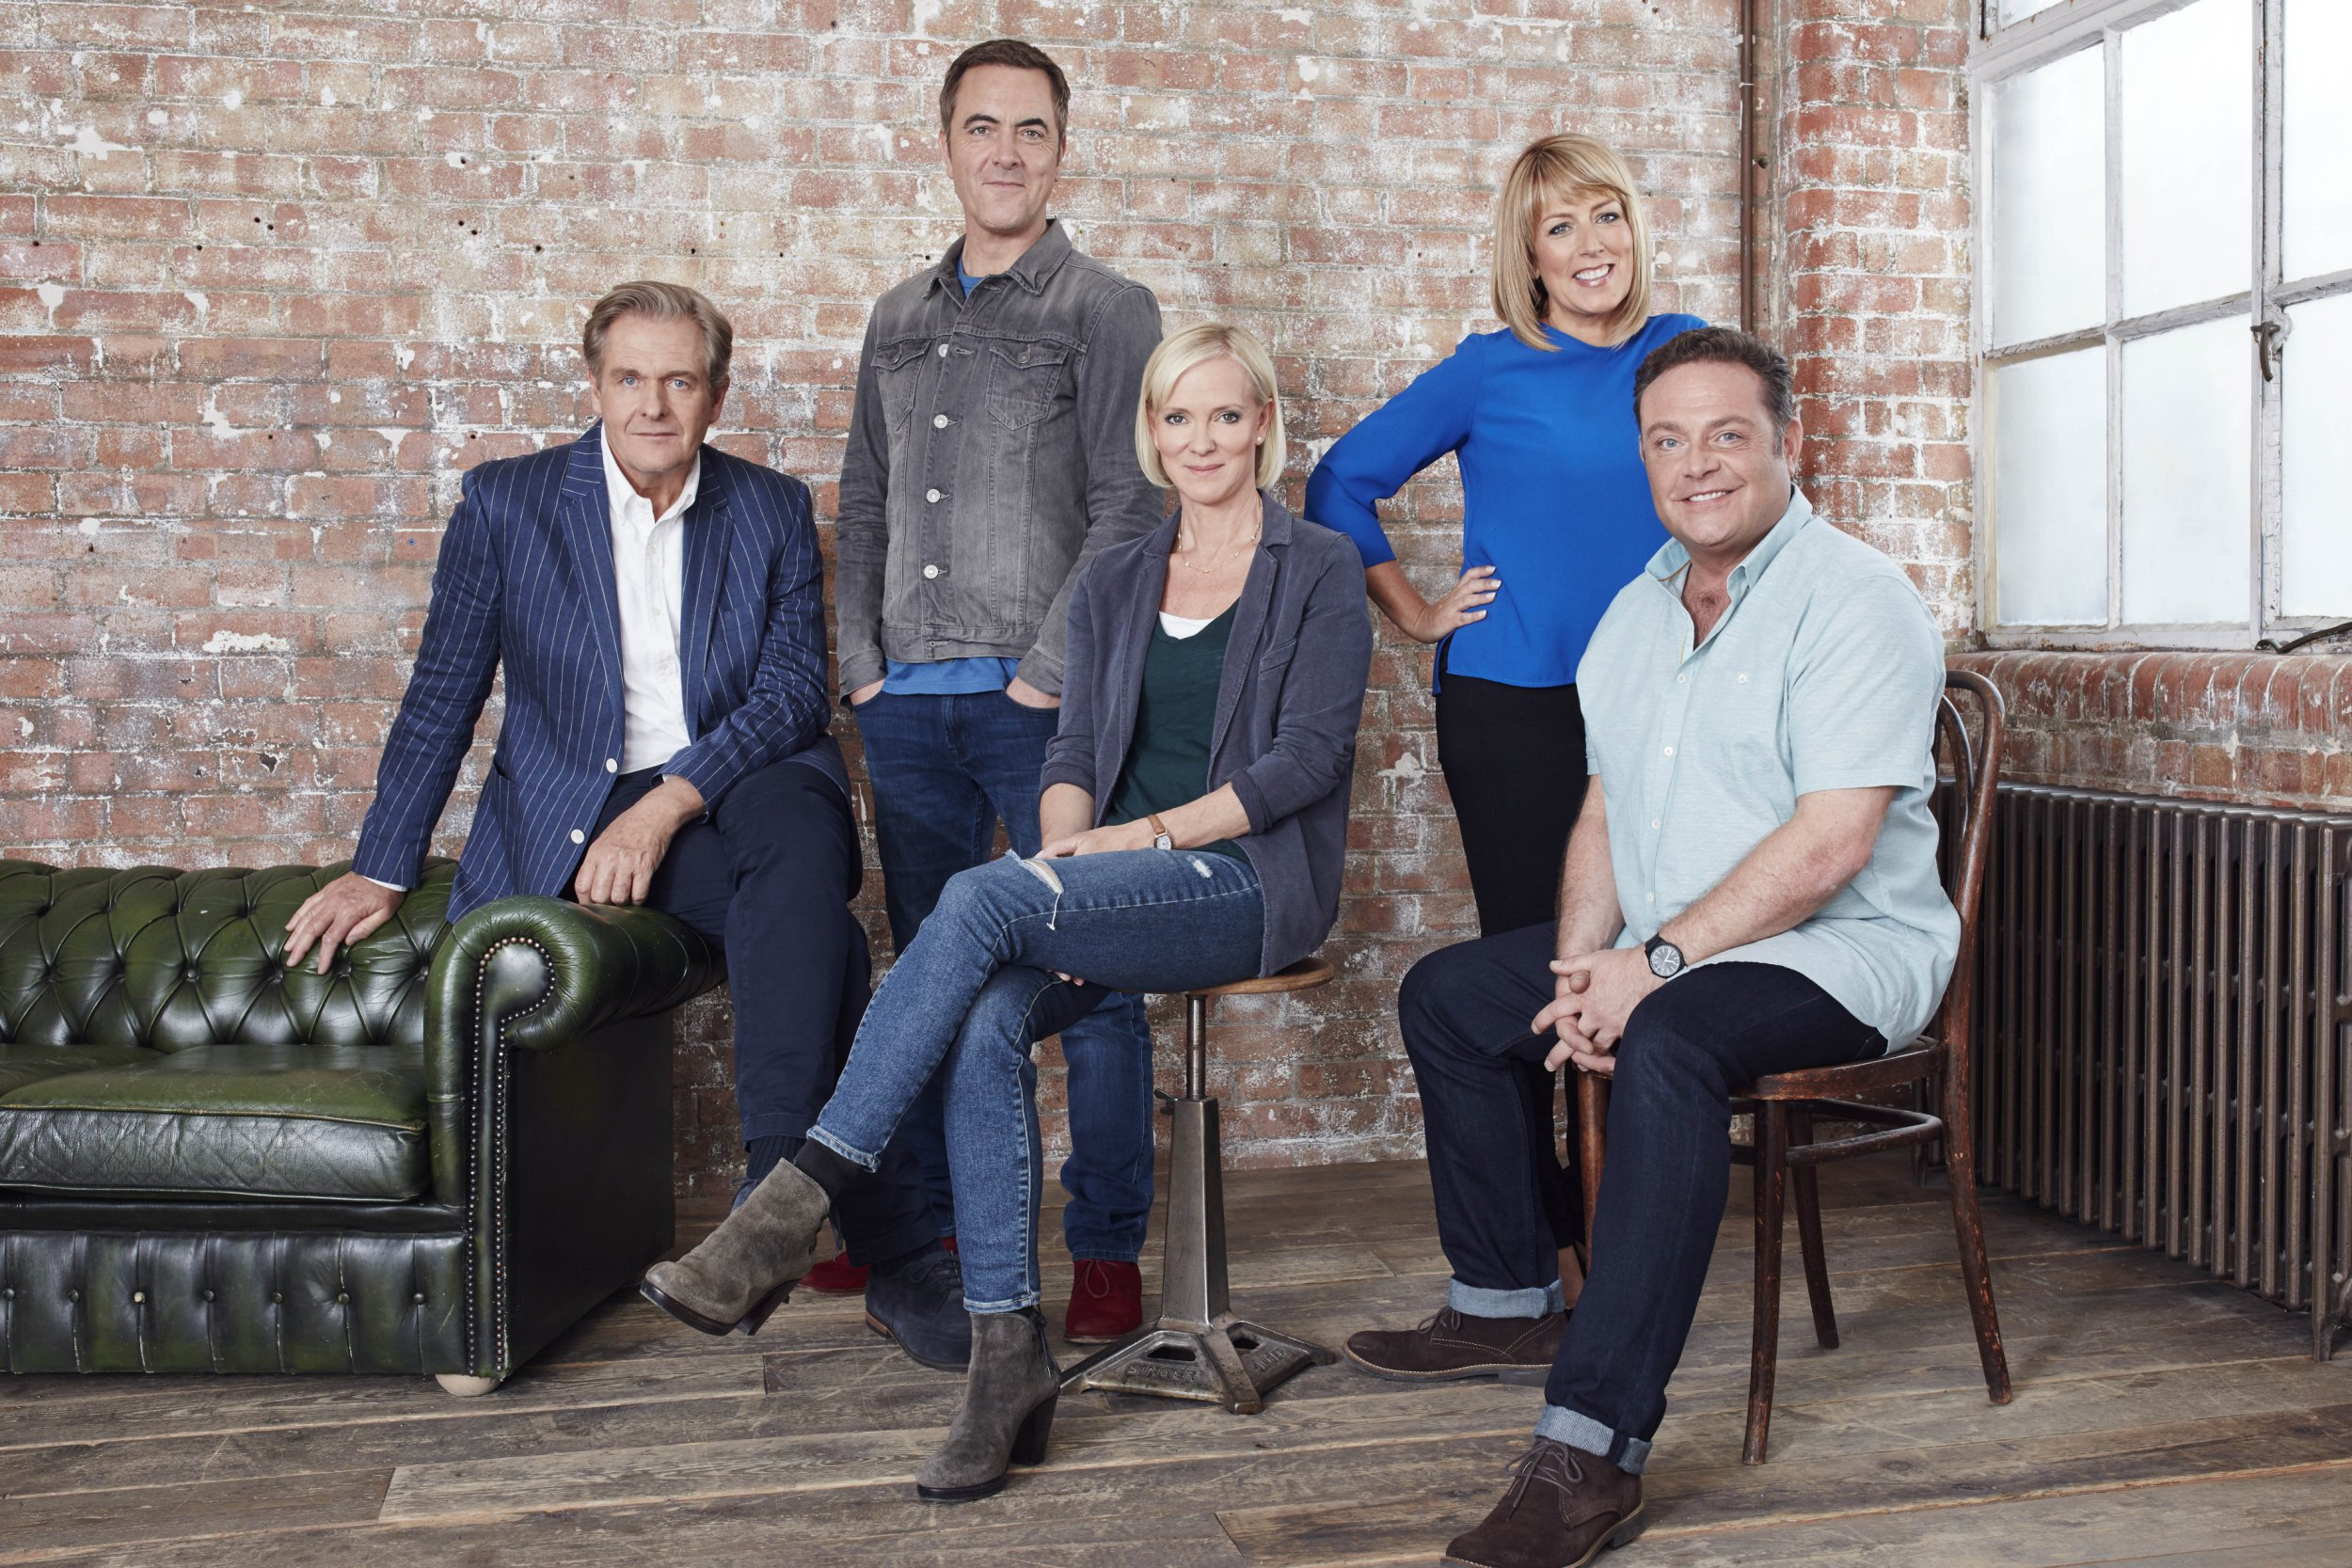 John Thomson confirms Cold Feet series 7 will be back this September